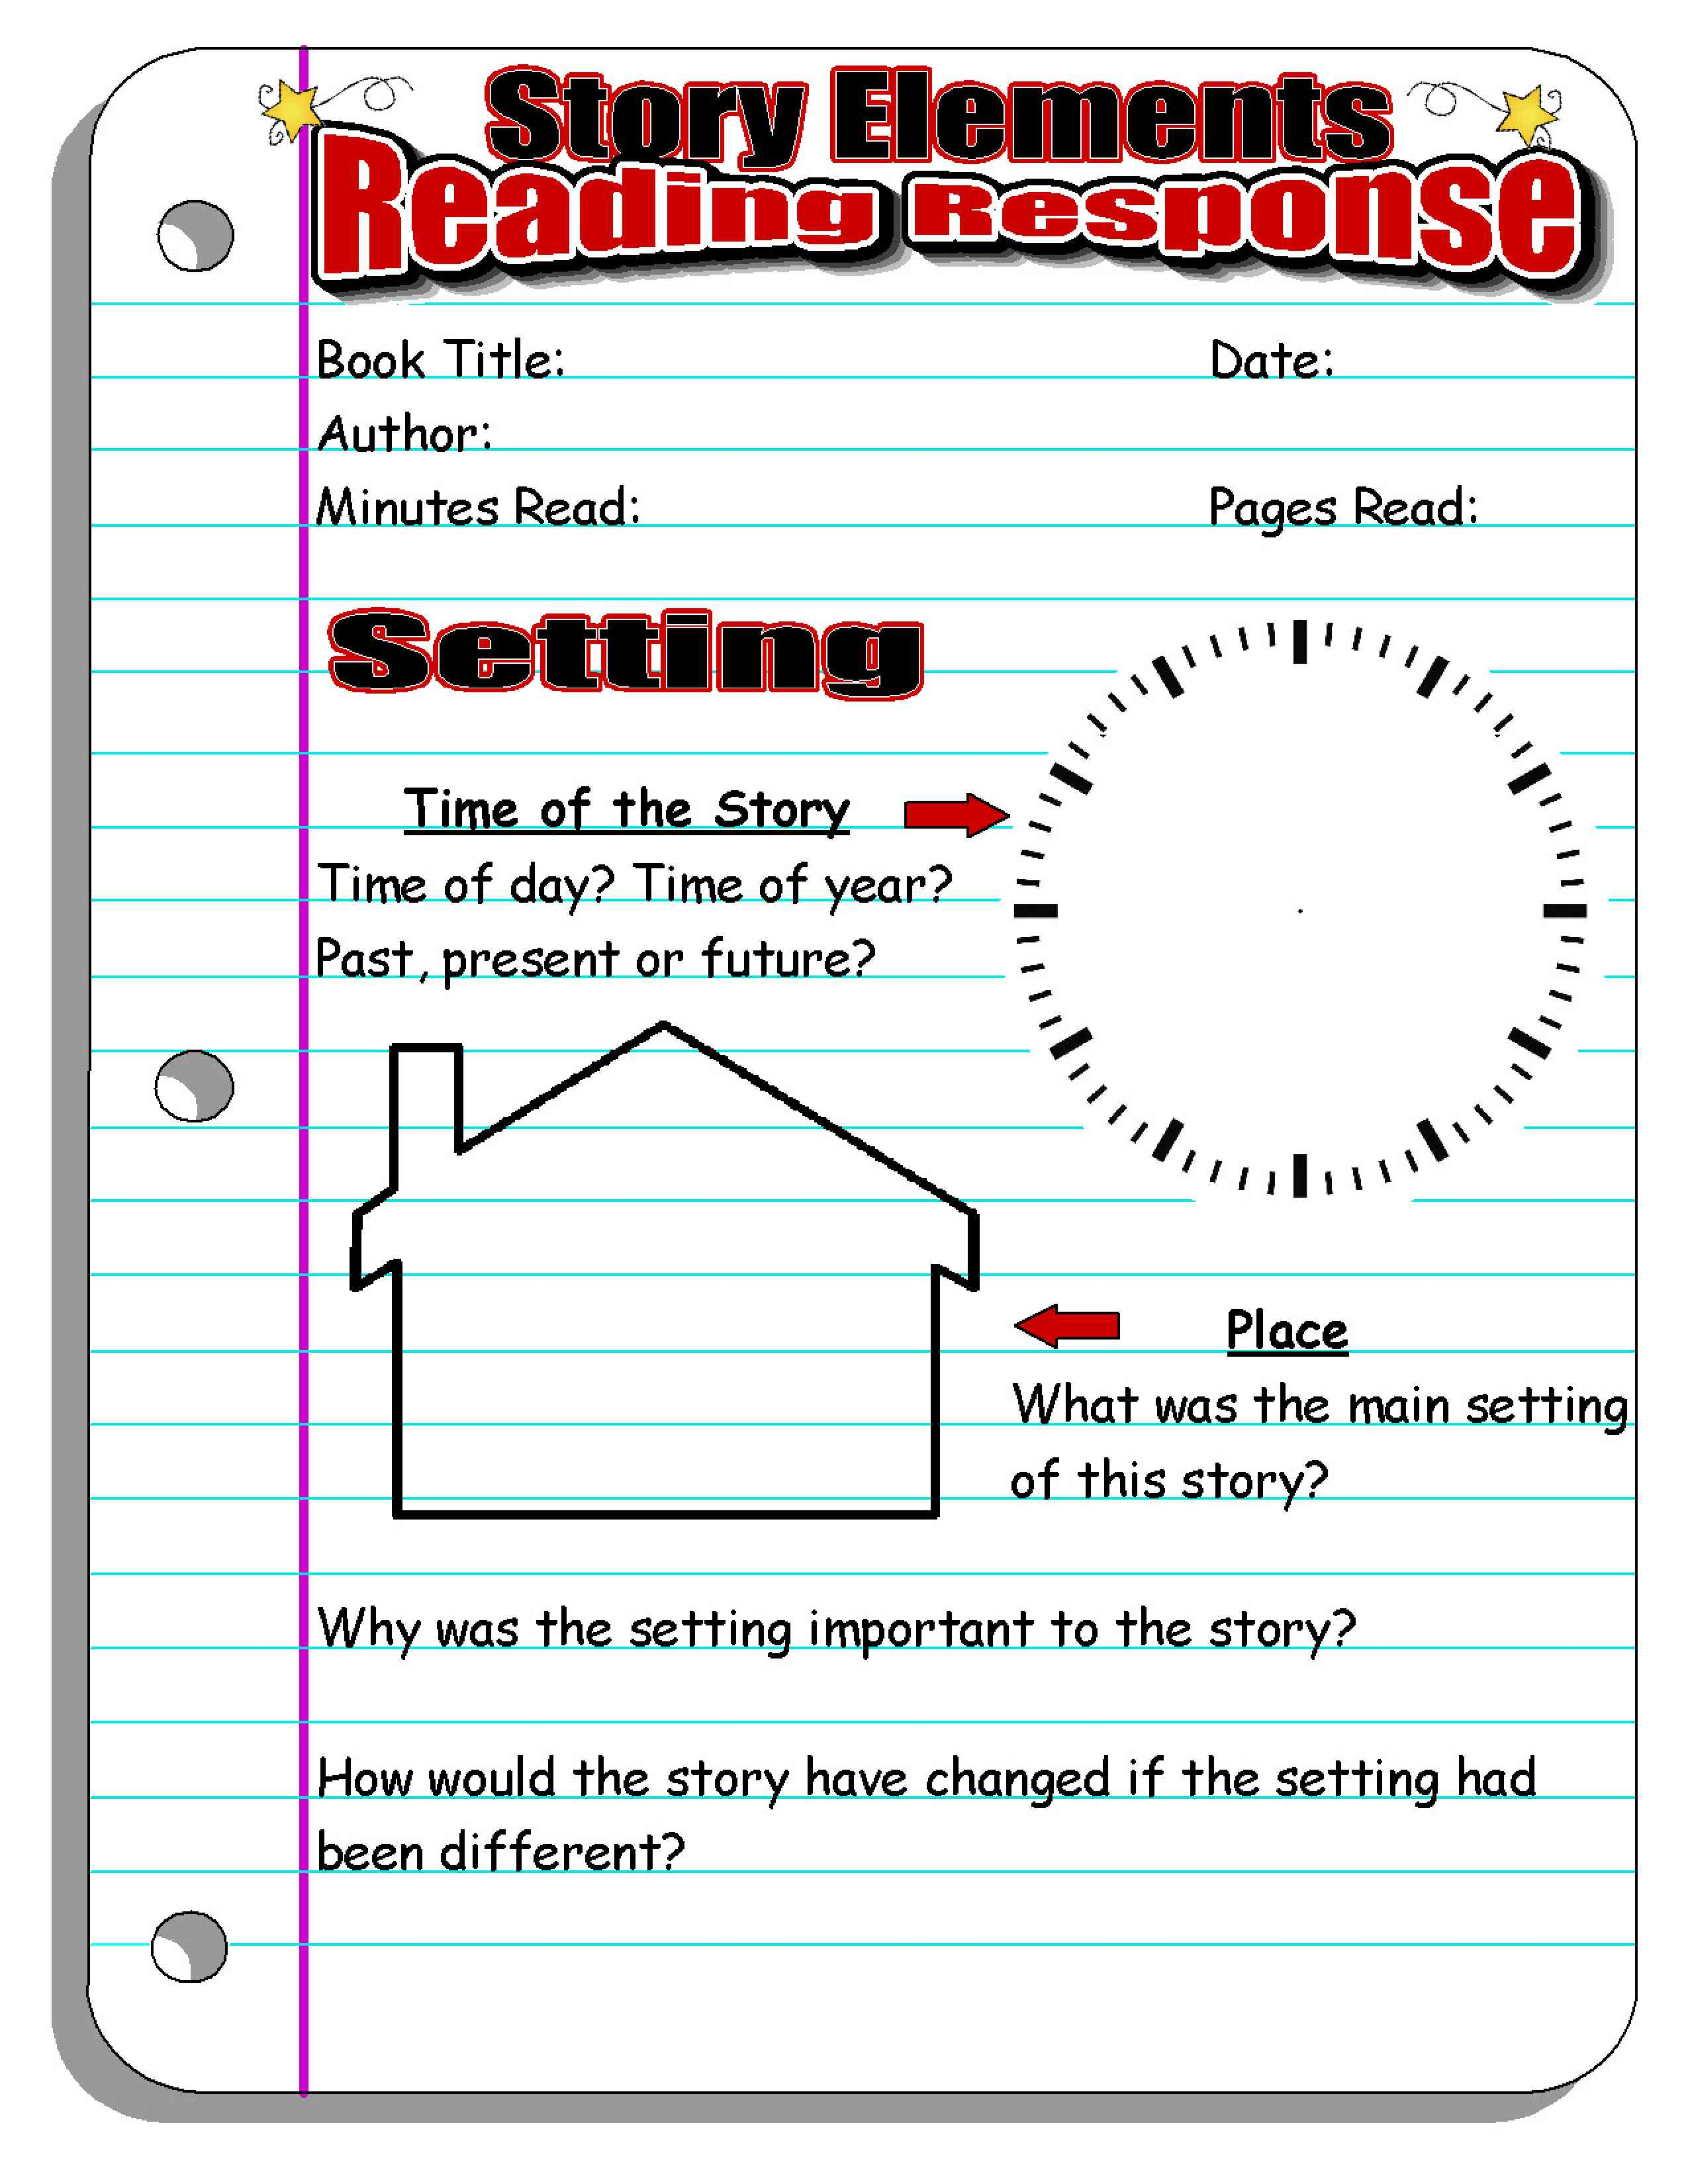 Worksheet 4th Grade Short Stories worksheet reading stories for 4th graders wosenly free response forms and graphic organizers scholastic